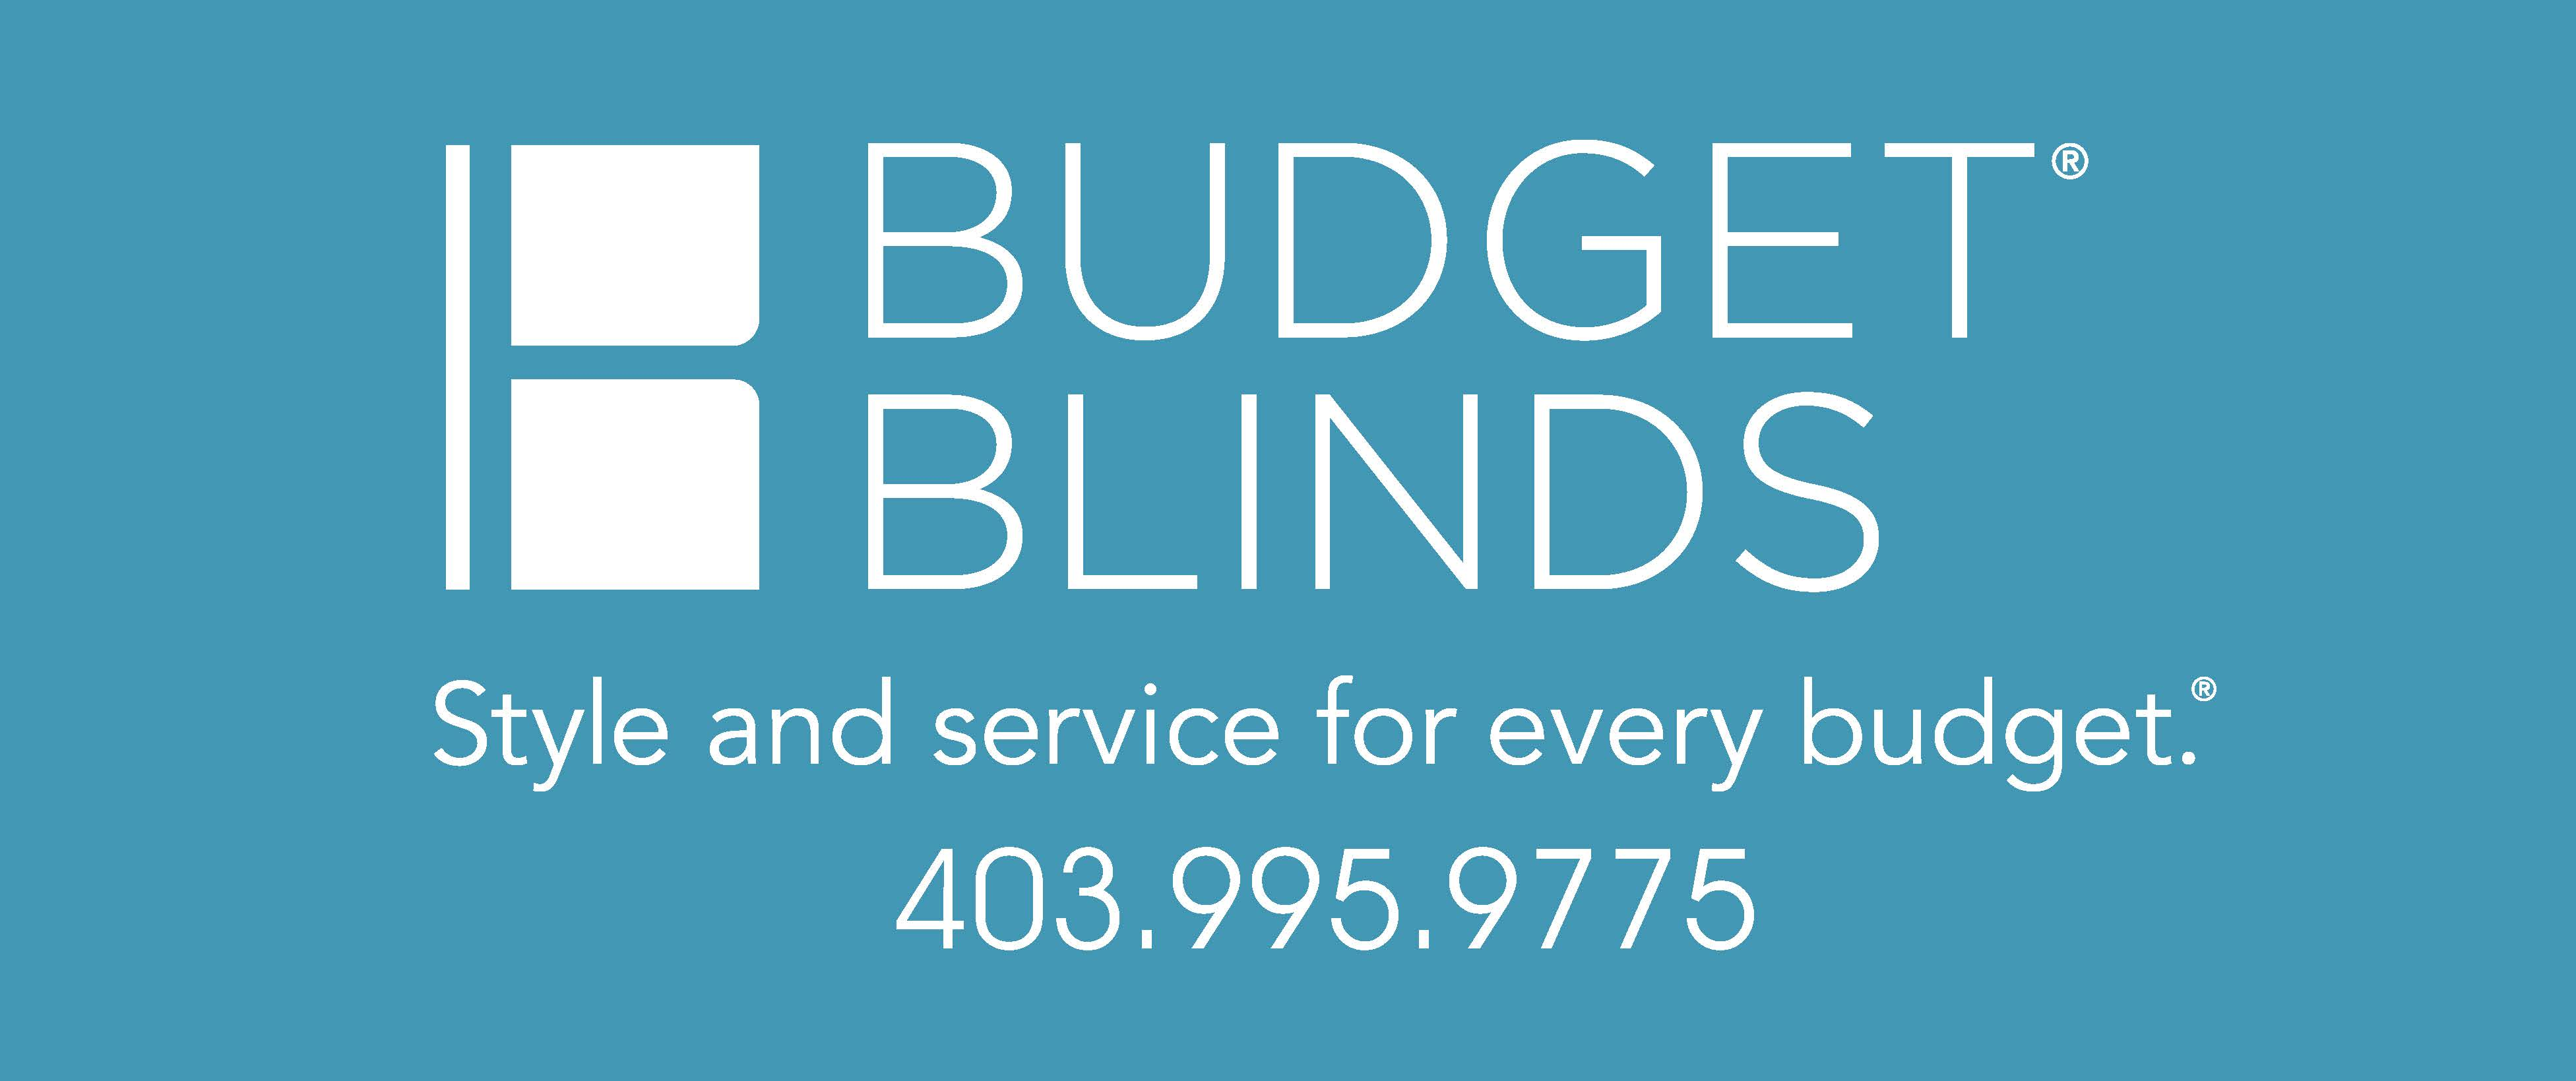 bbss series blinds toolkit signature budget digital hayley com wolfe